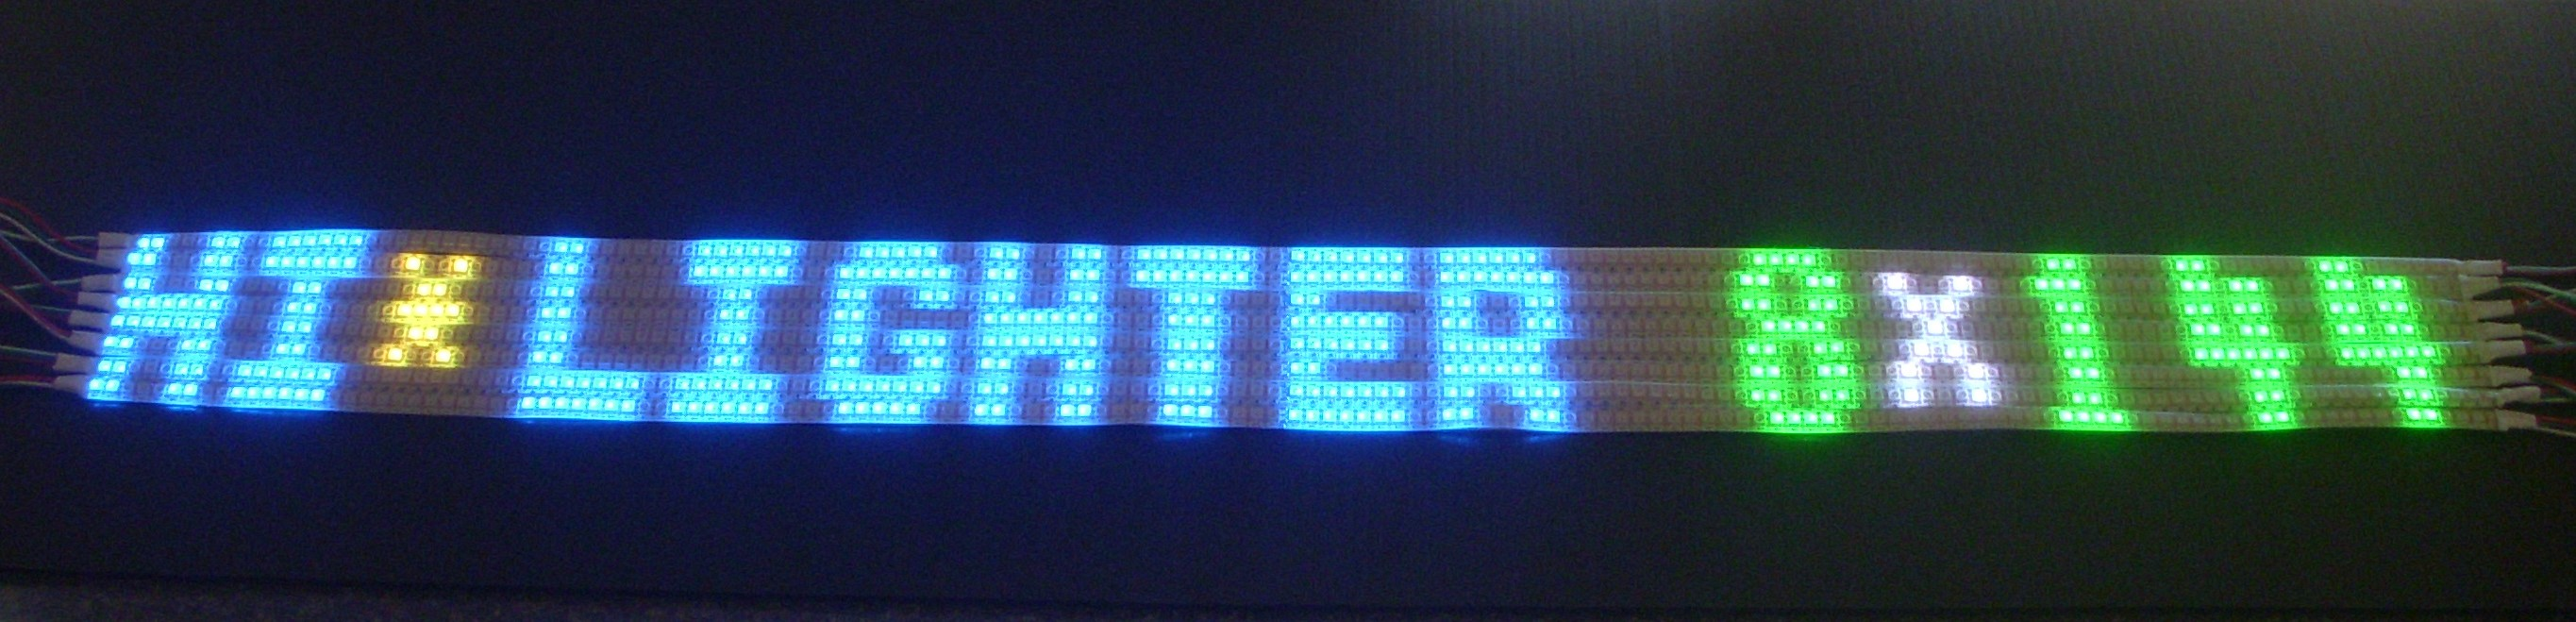 HI*LIGHTER SIGN 8x144